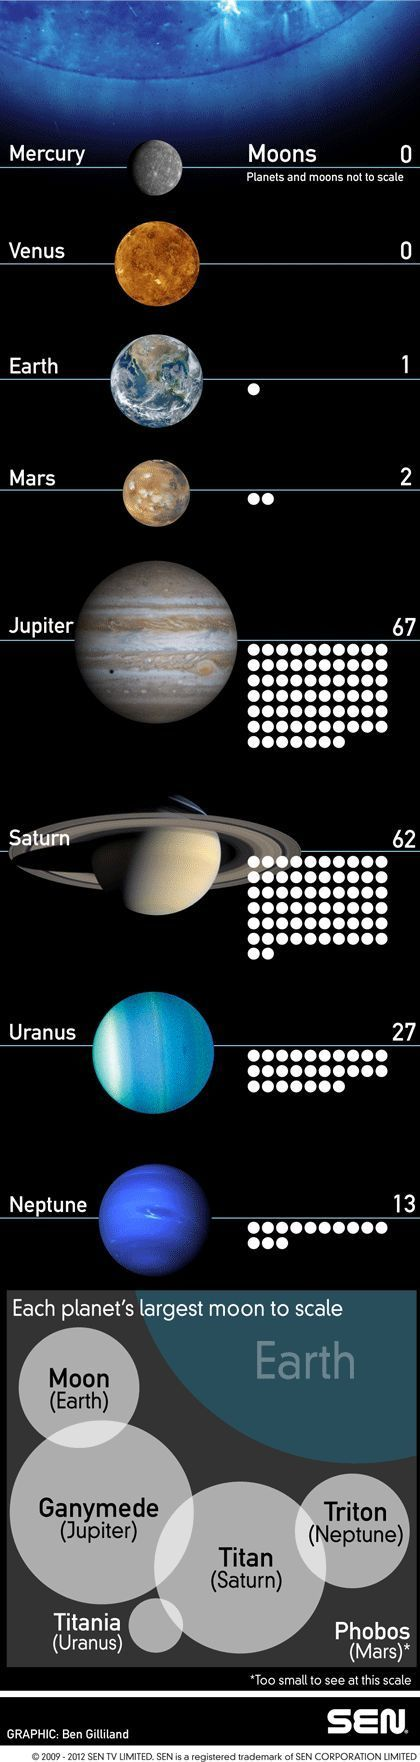 Moons and Planets of the Solar System